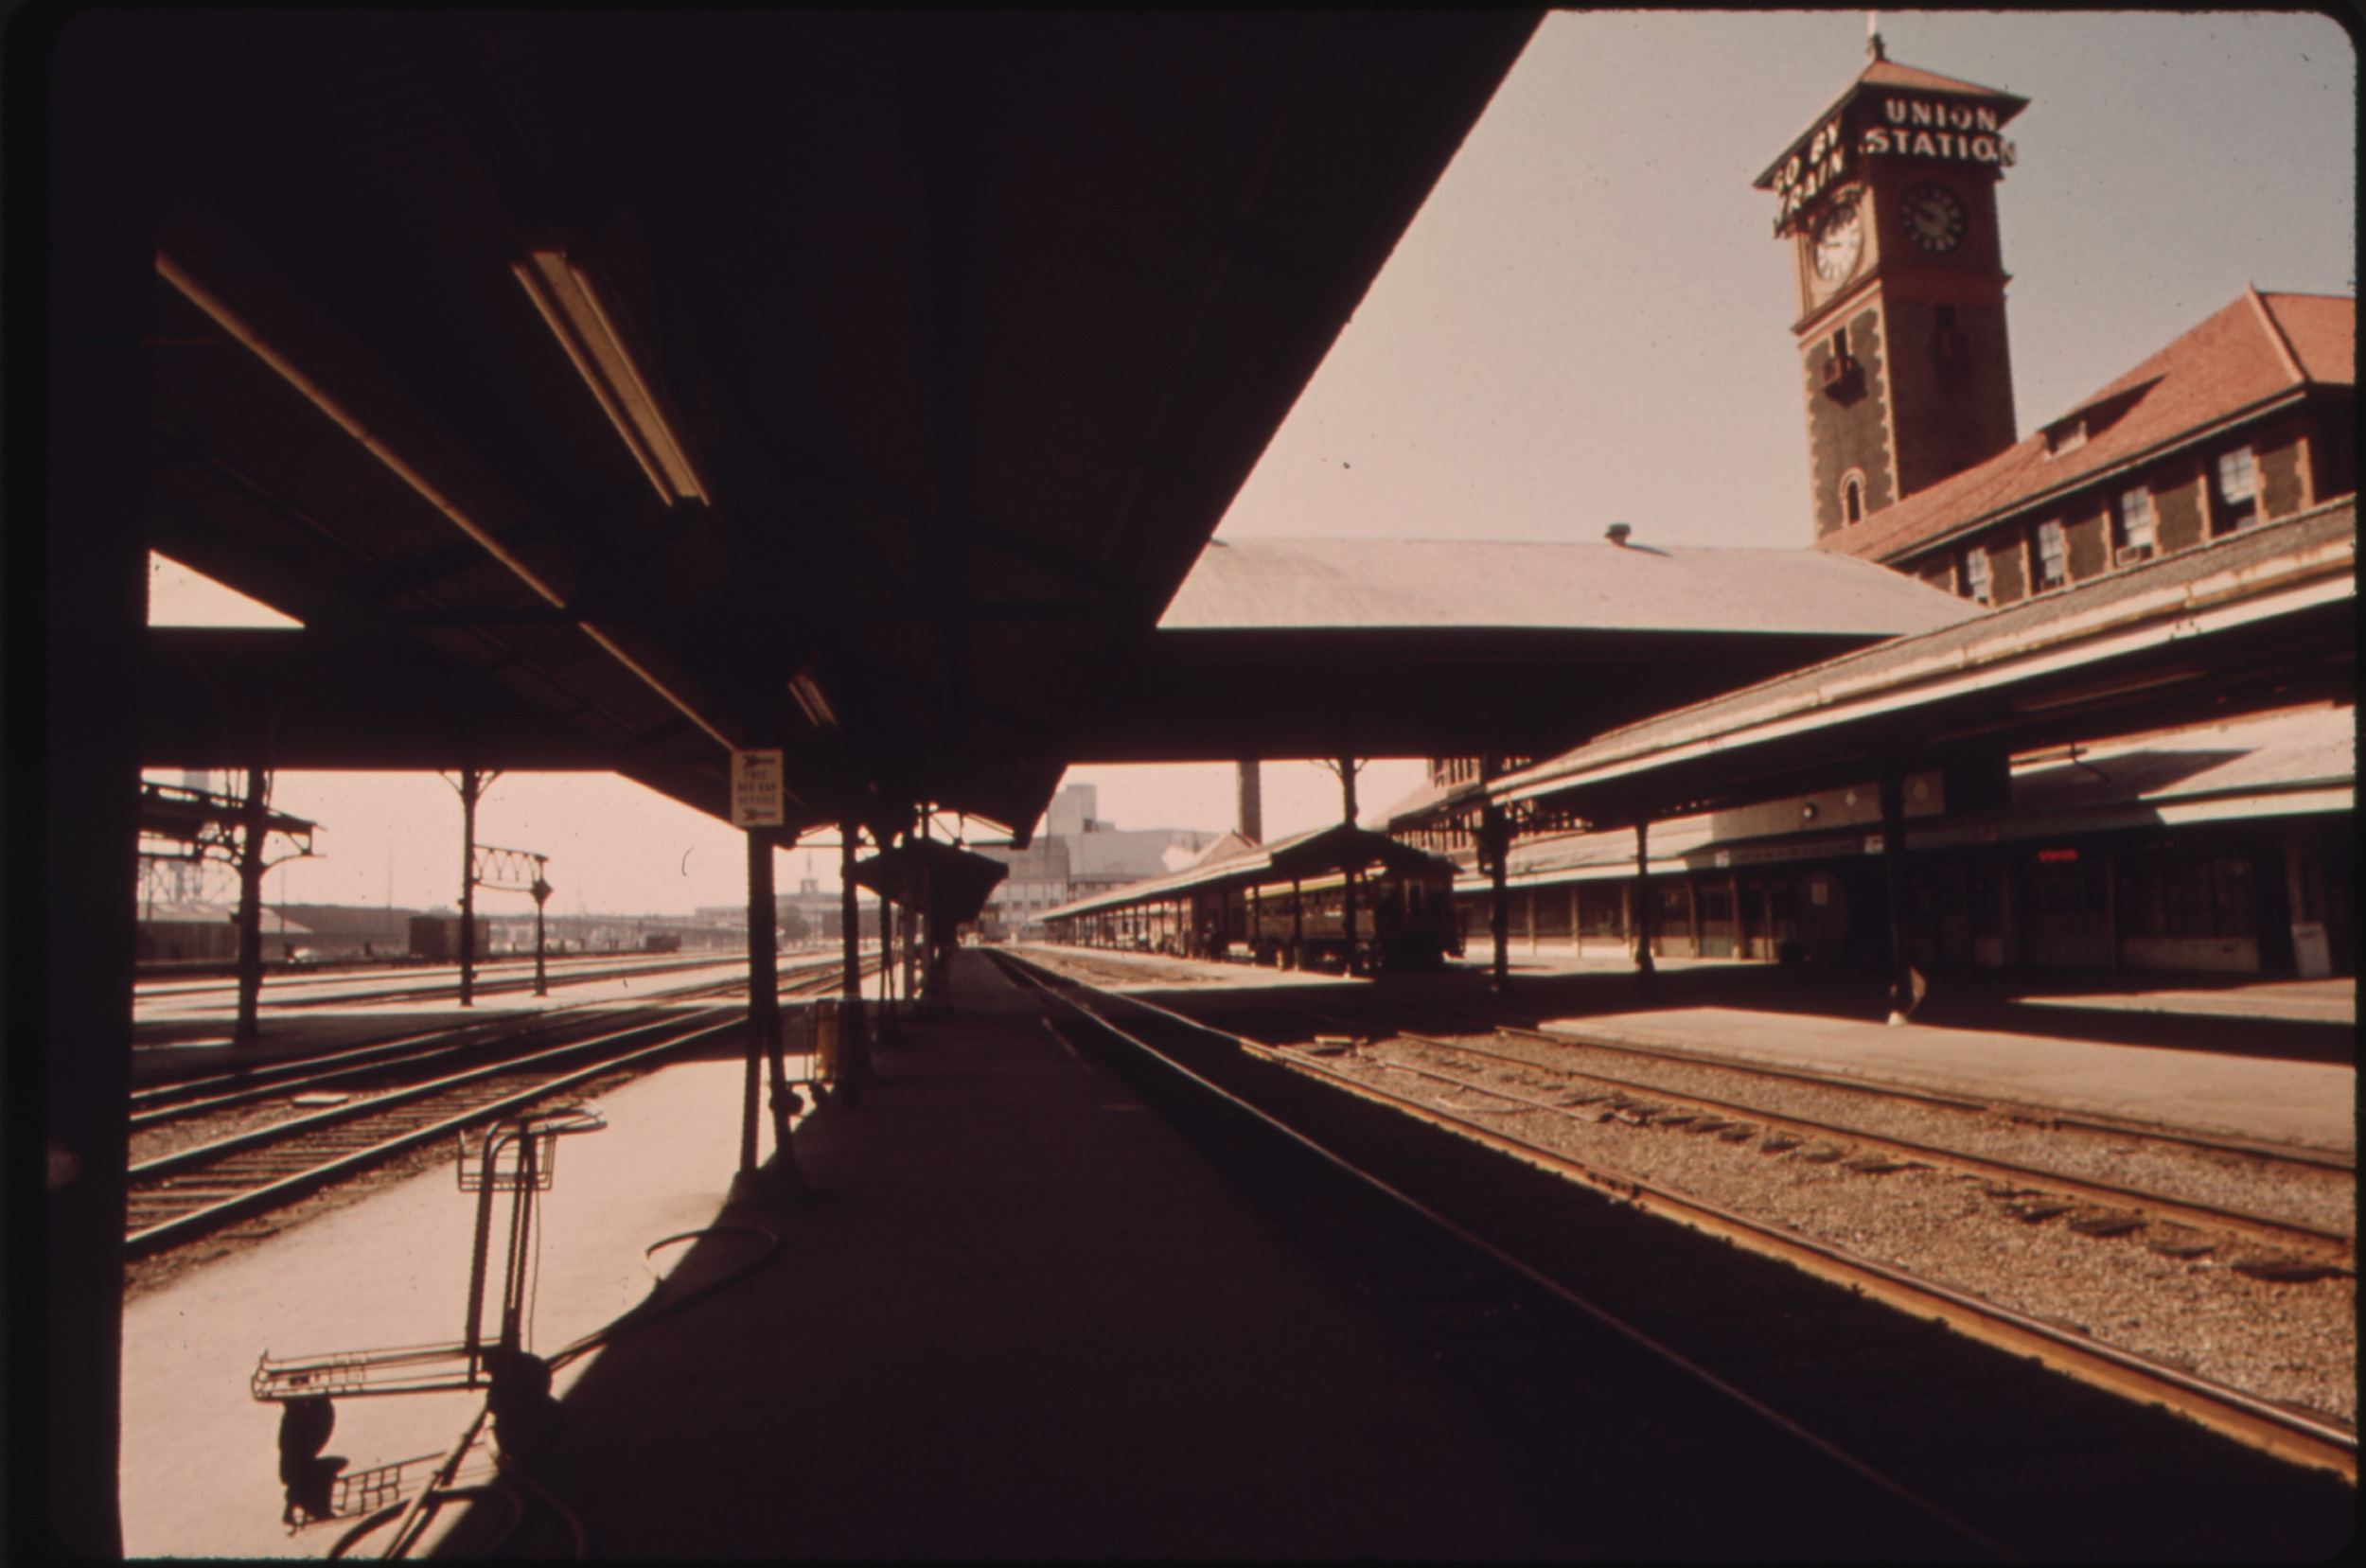 Portland's Union Station circa 1974.  Photo by Charles O'Rear, U.S. Environmental Protection Agency